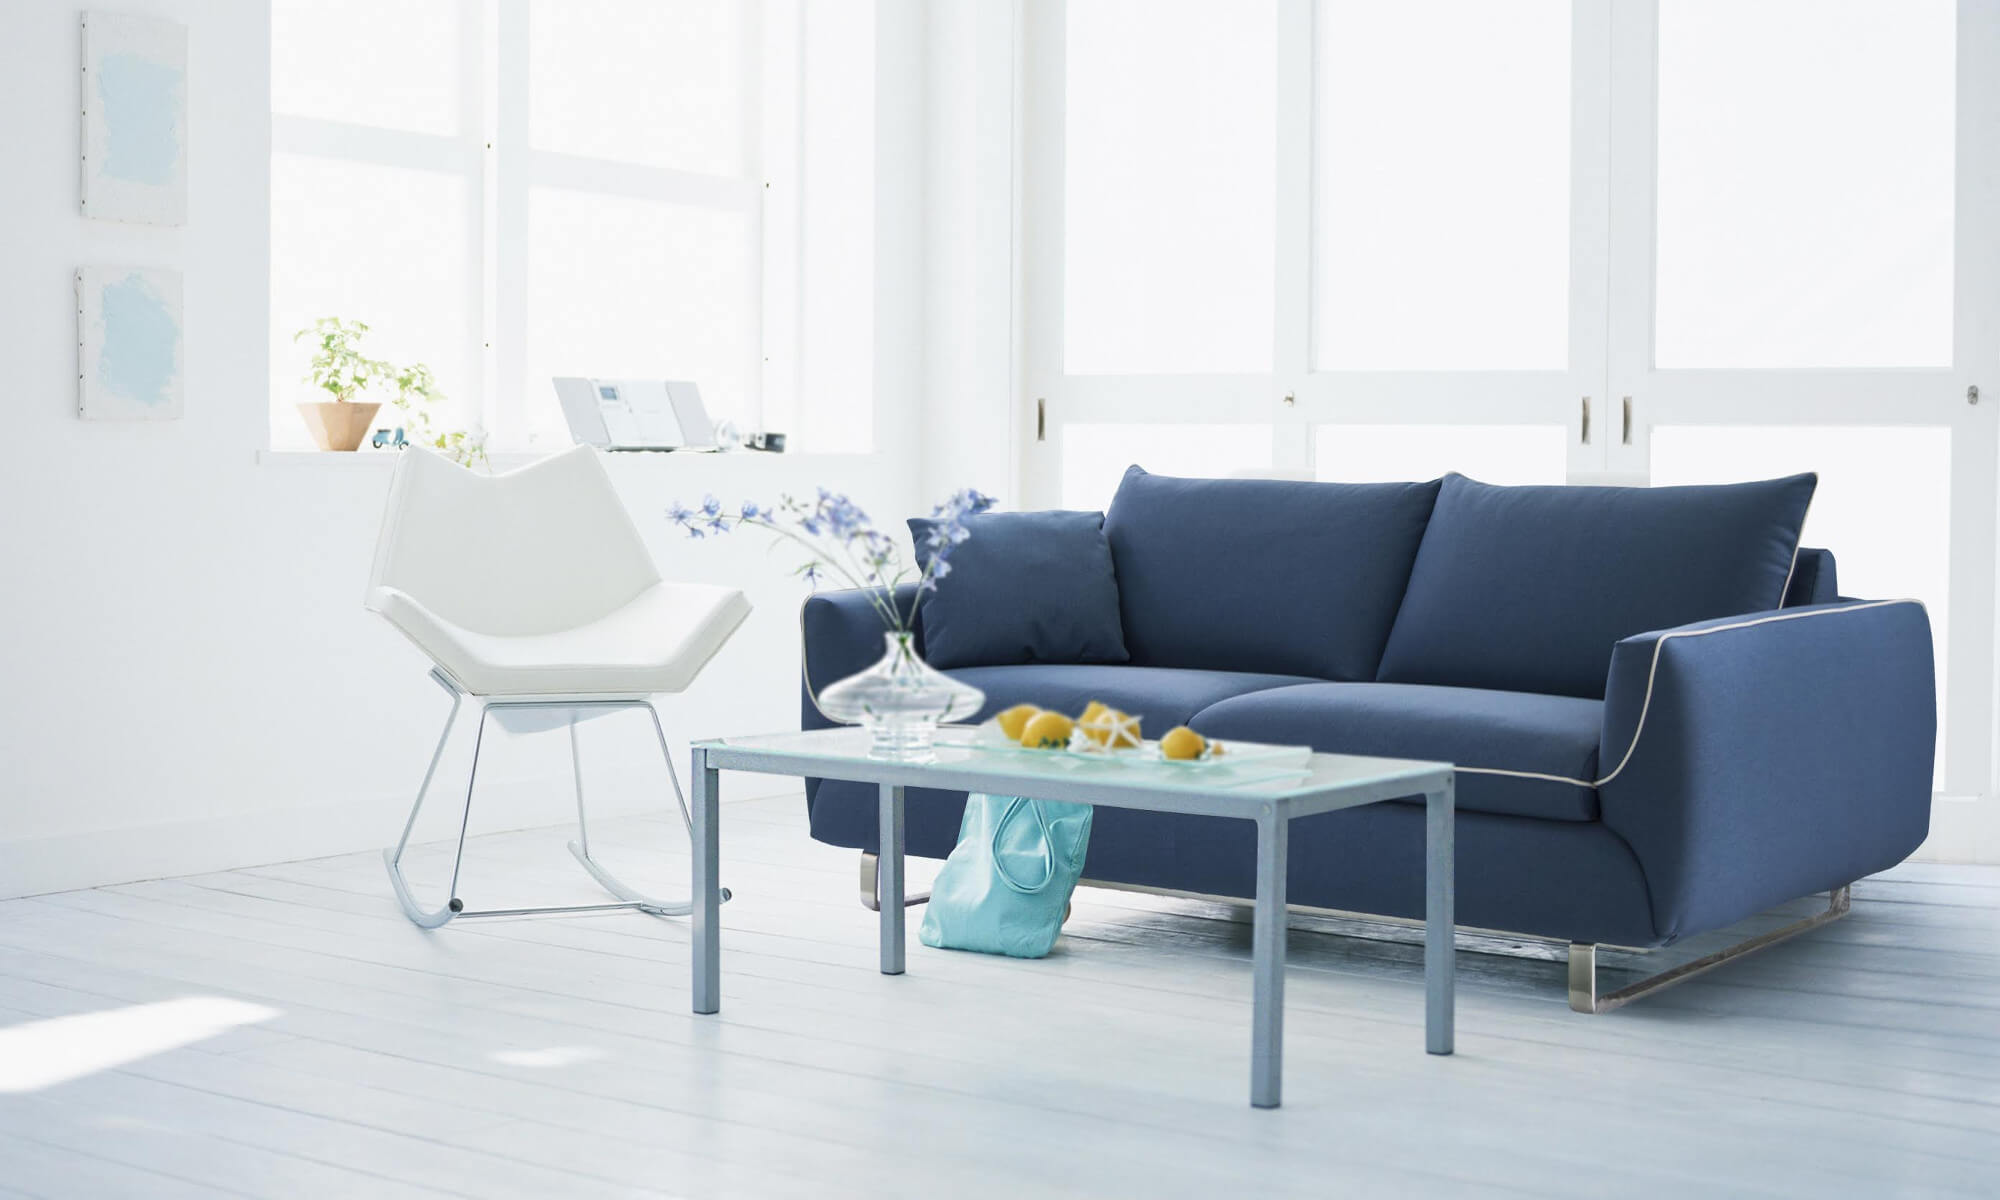 Maestro sofa bed pezzan usa for Sofa bed made in usa